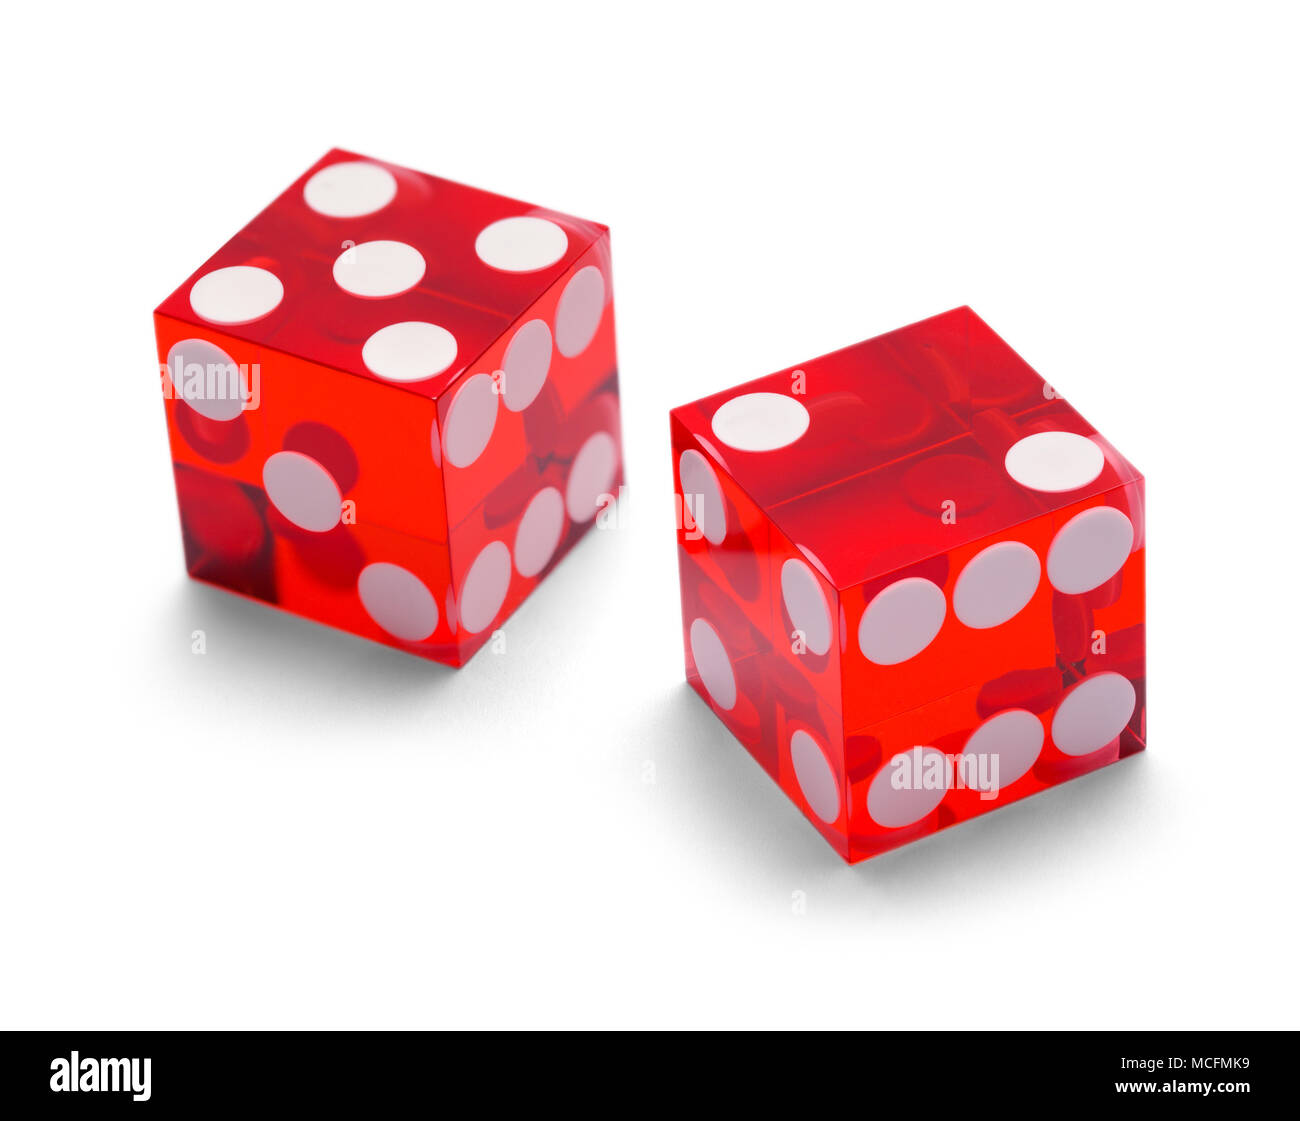 Red Casino Gambling Dice Isolated on White Background. - Stock Image